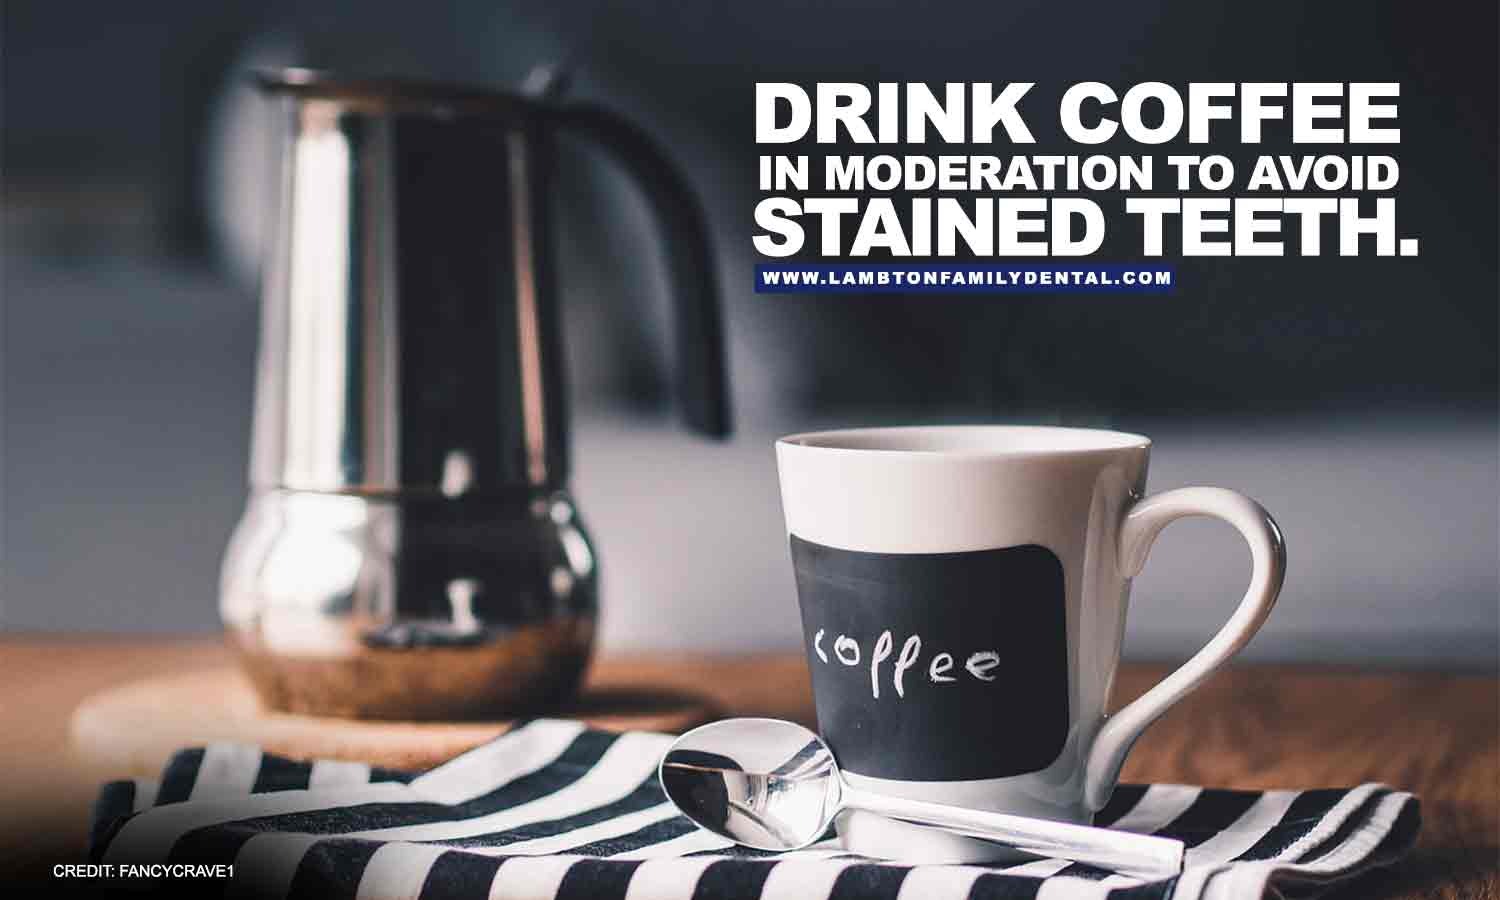 Drink coffee in moderation